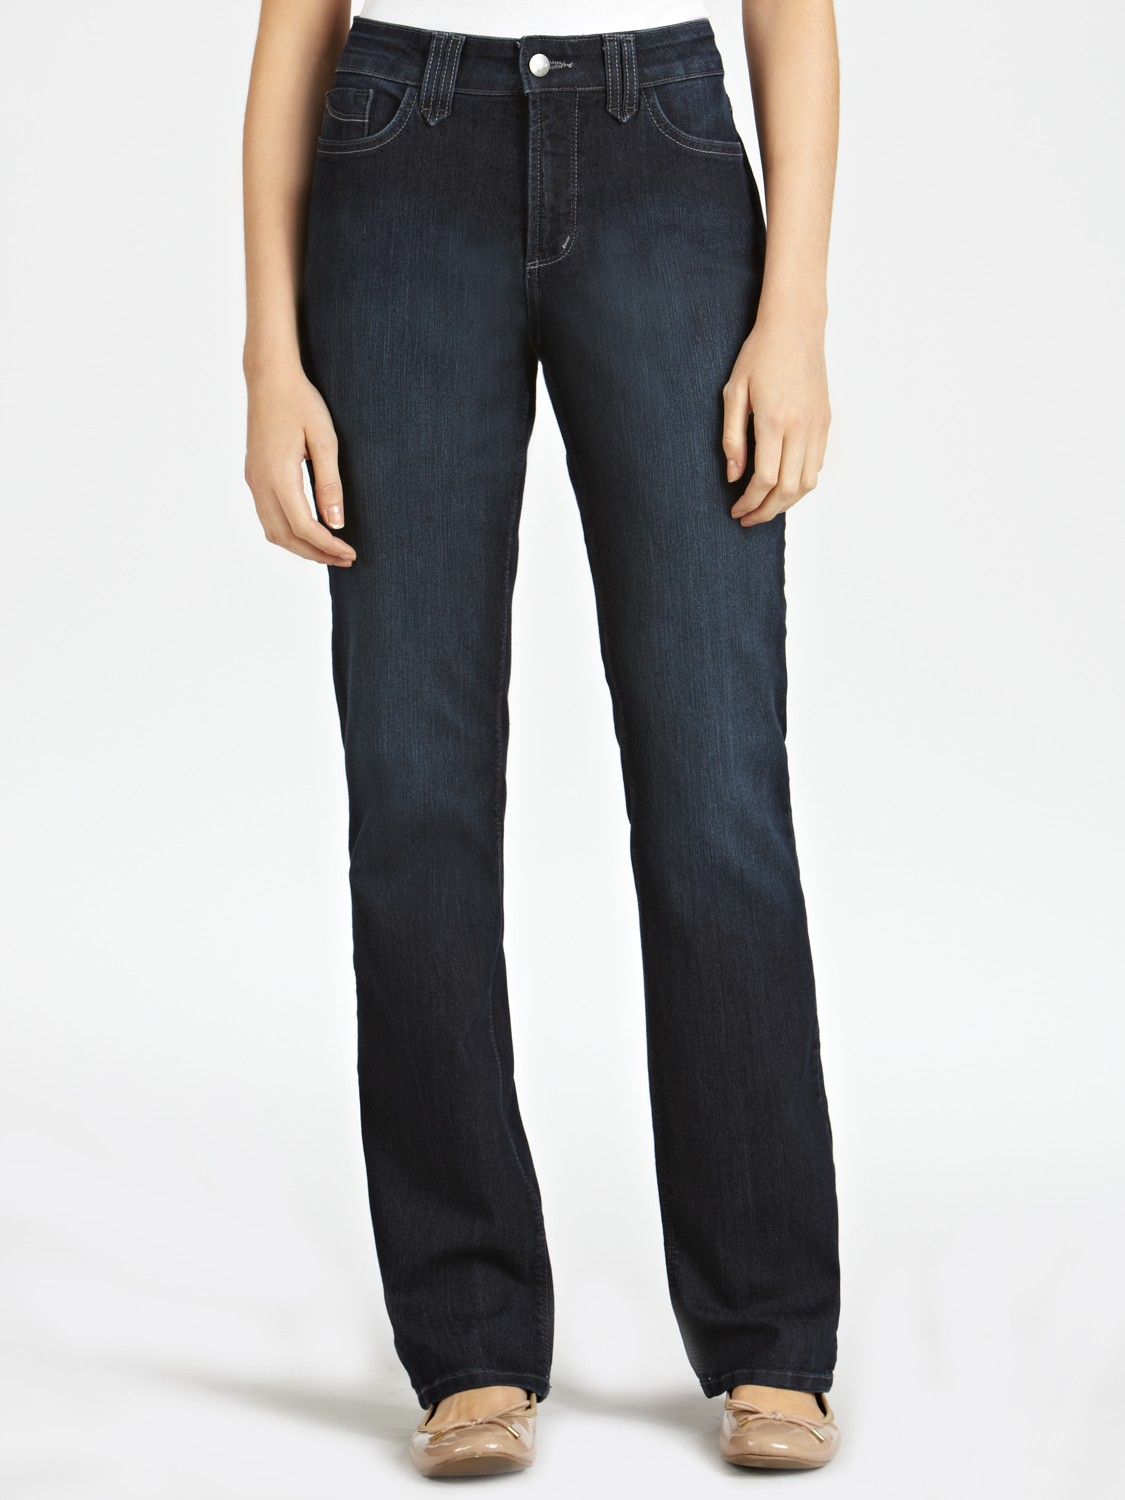 Not Your Daughter's Jeans Denim Straight Washed Jeans in Blue